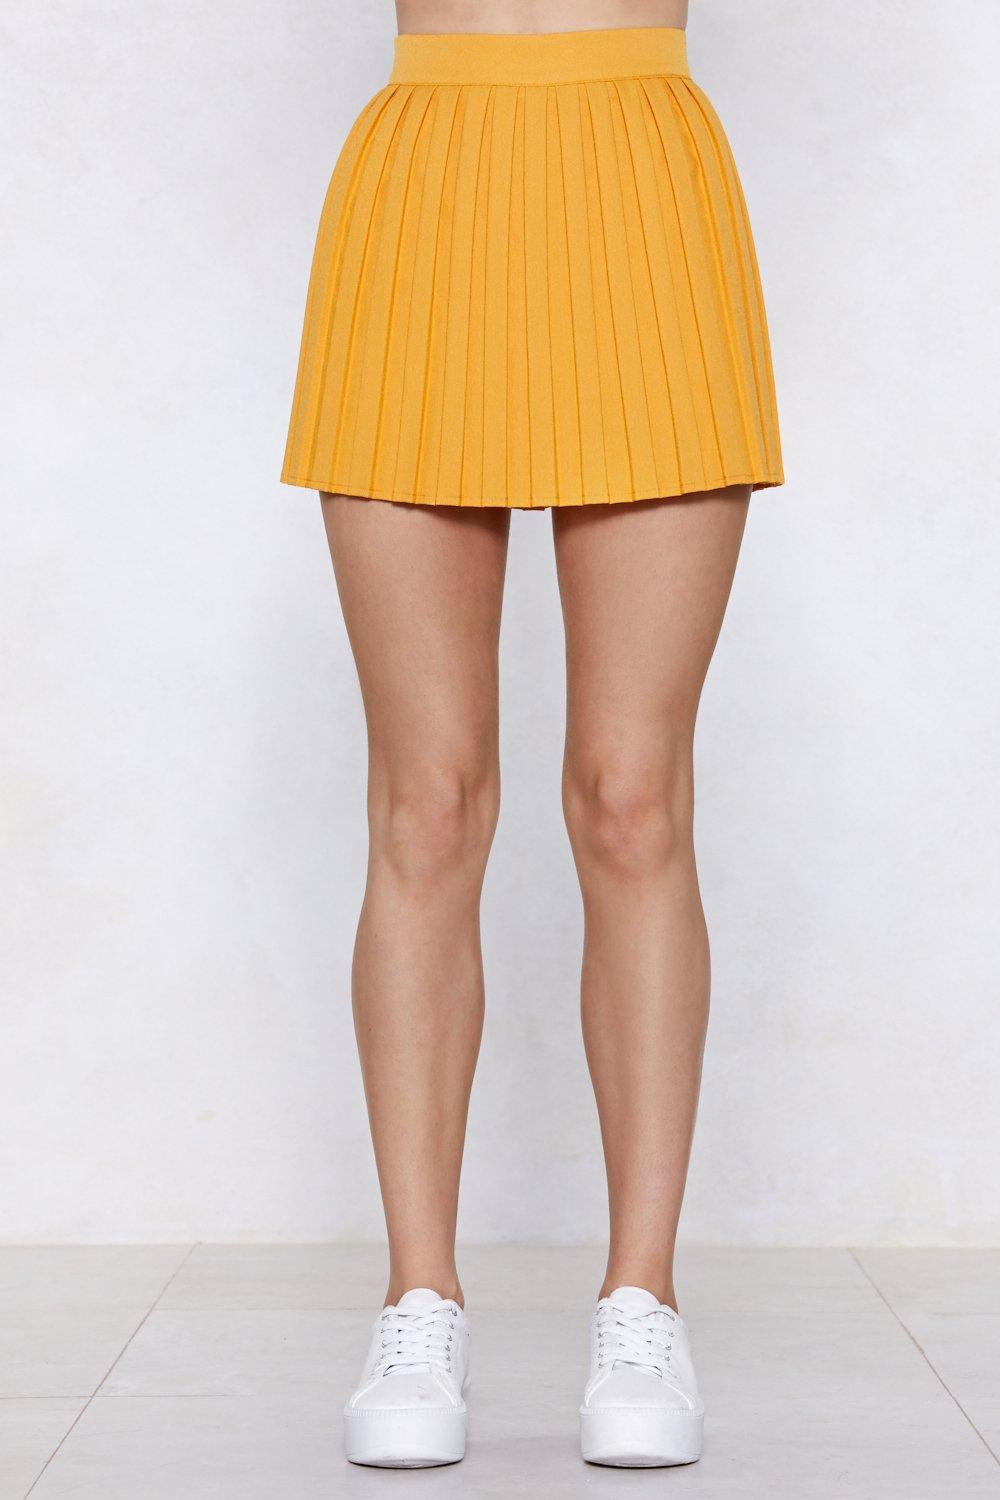 20c2193de9 Com-Pleat Your Look Mini Skirt